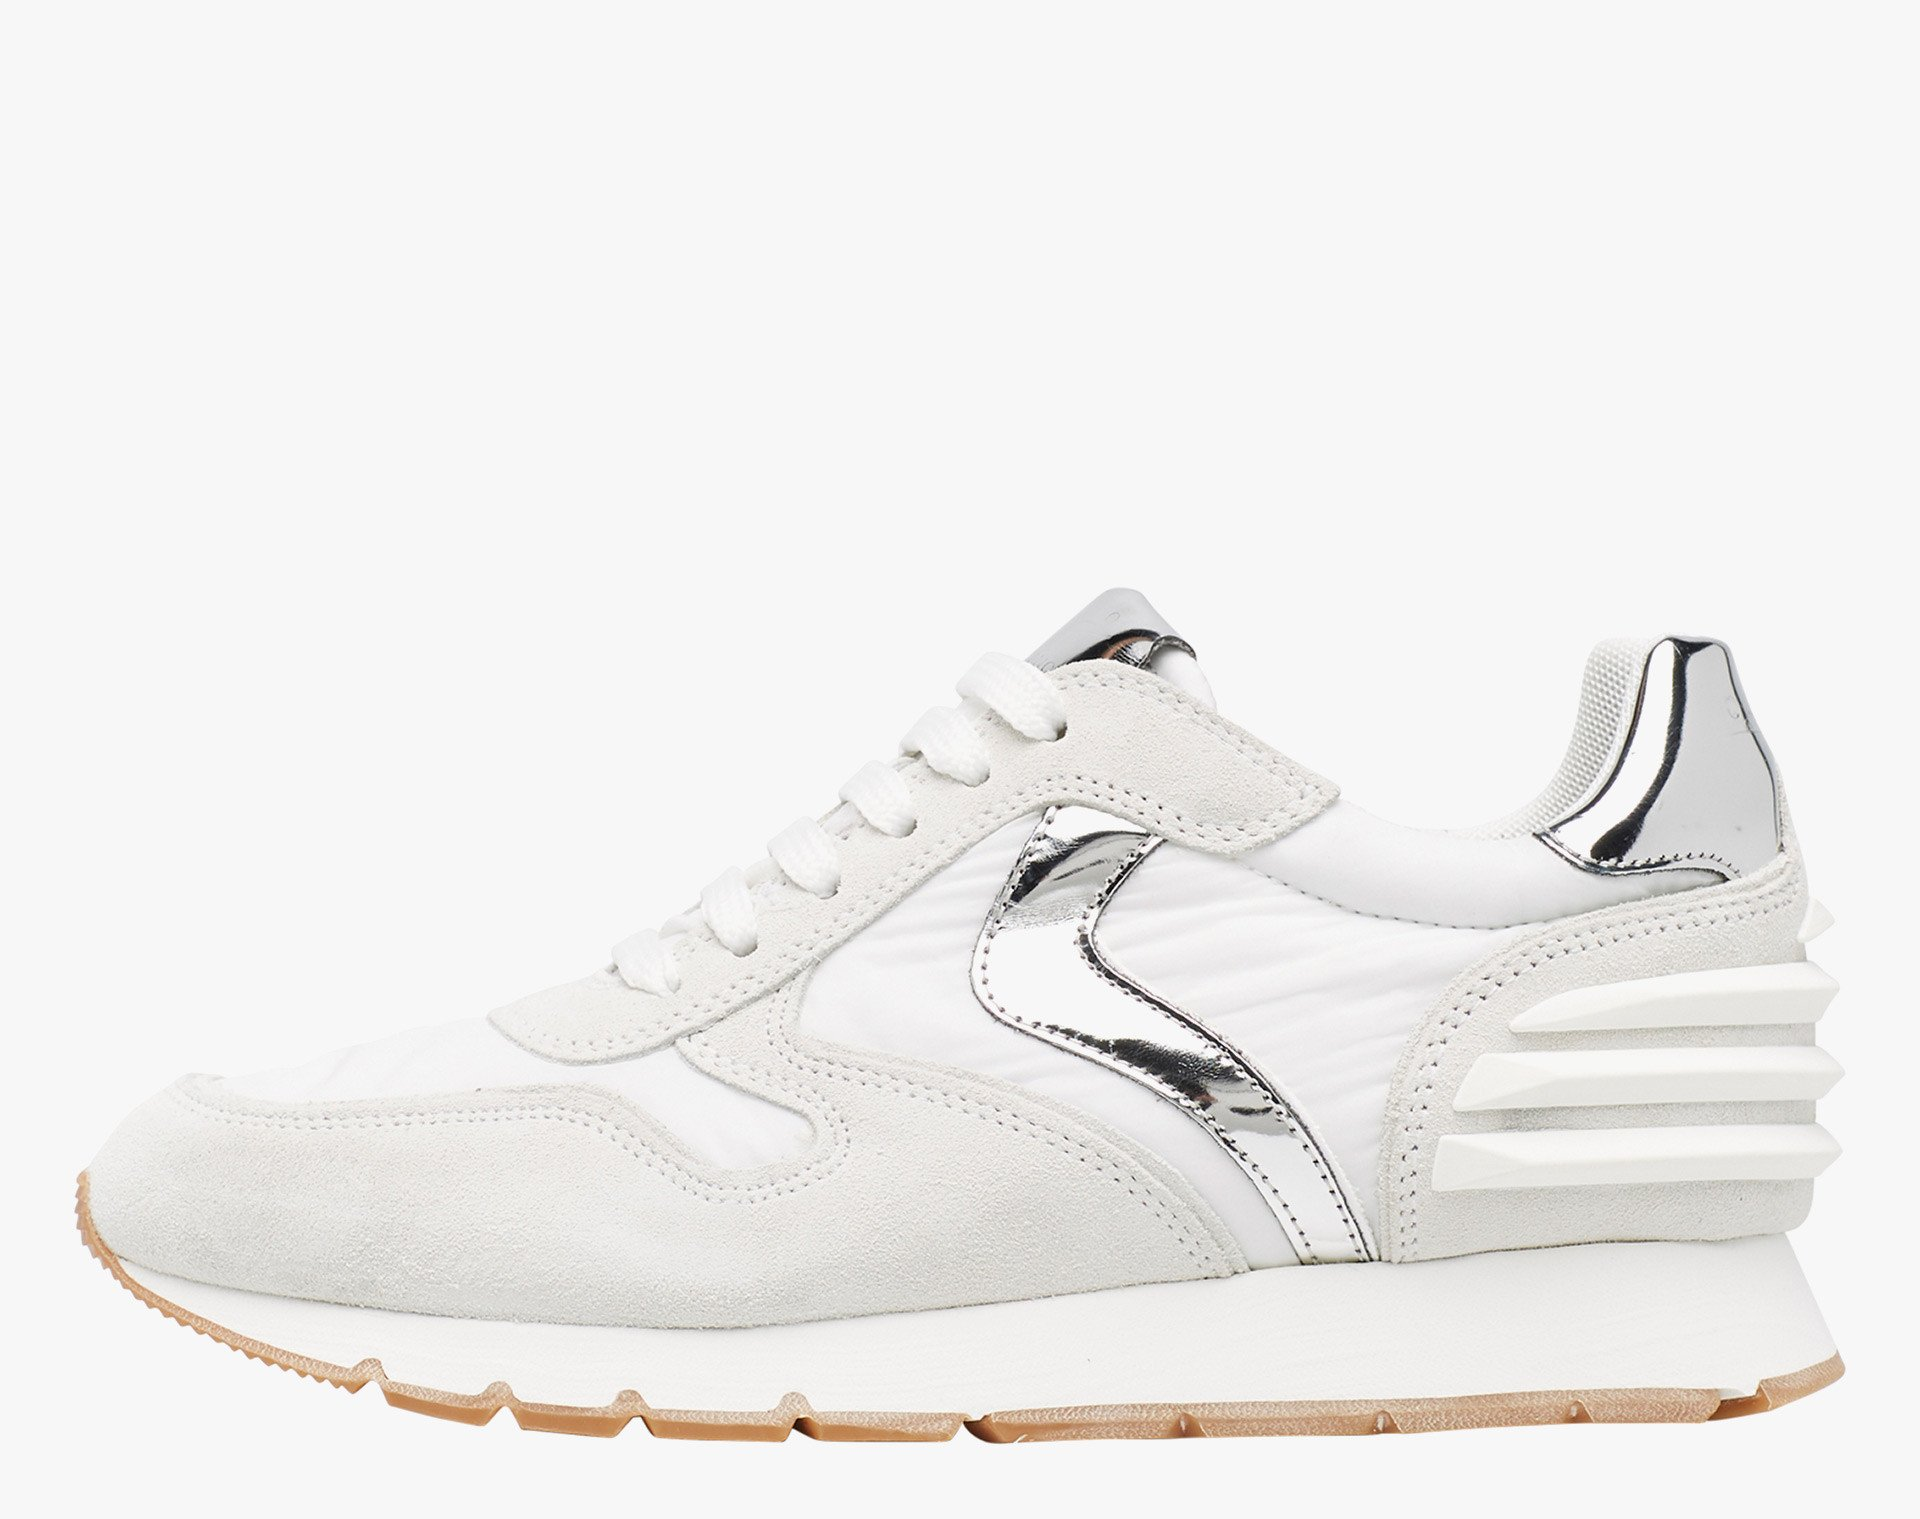 JULIA POWER - Vintage suede sneaker with silver details - White